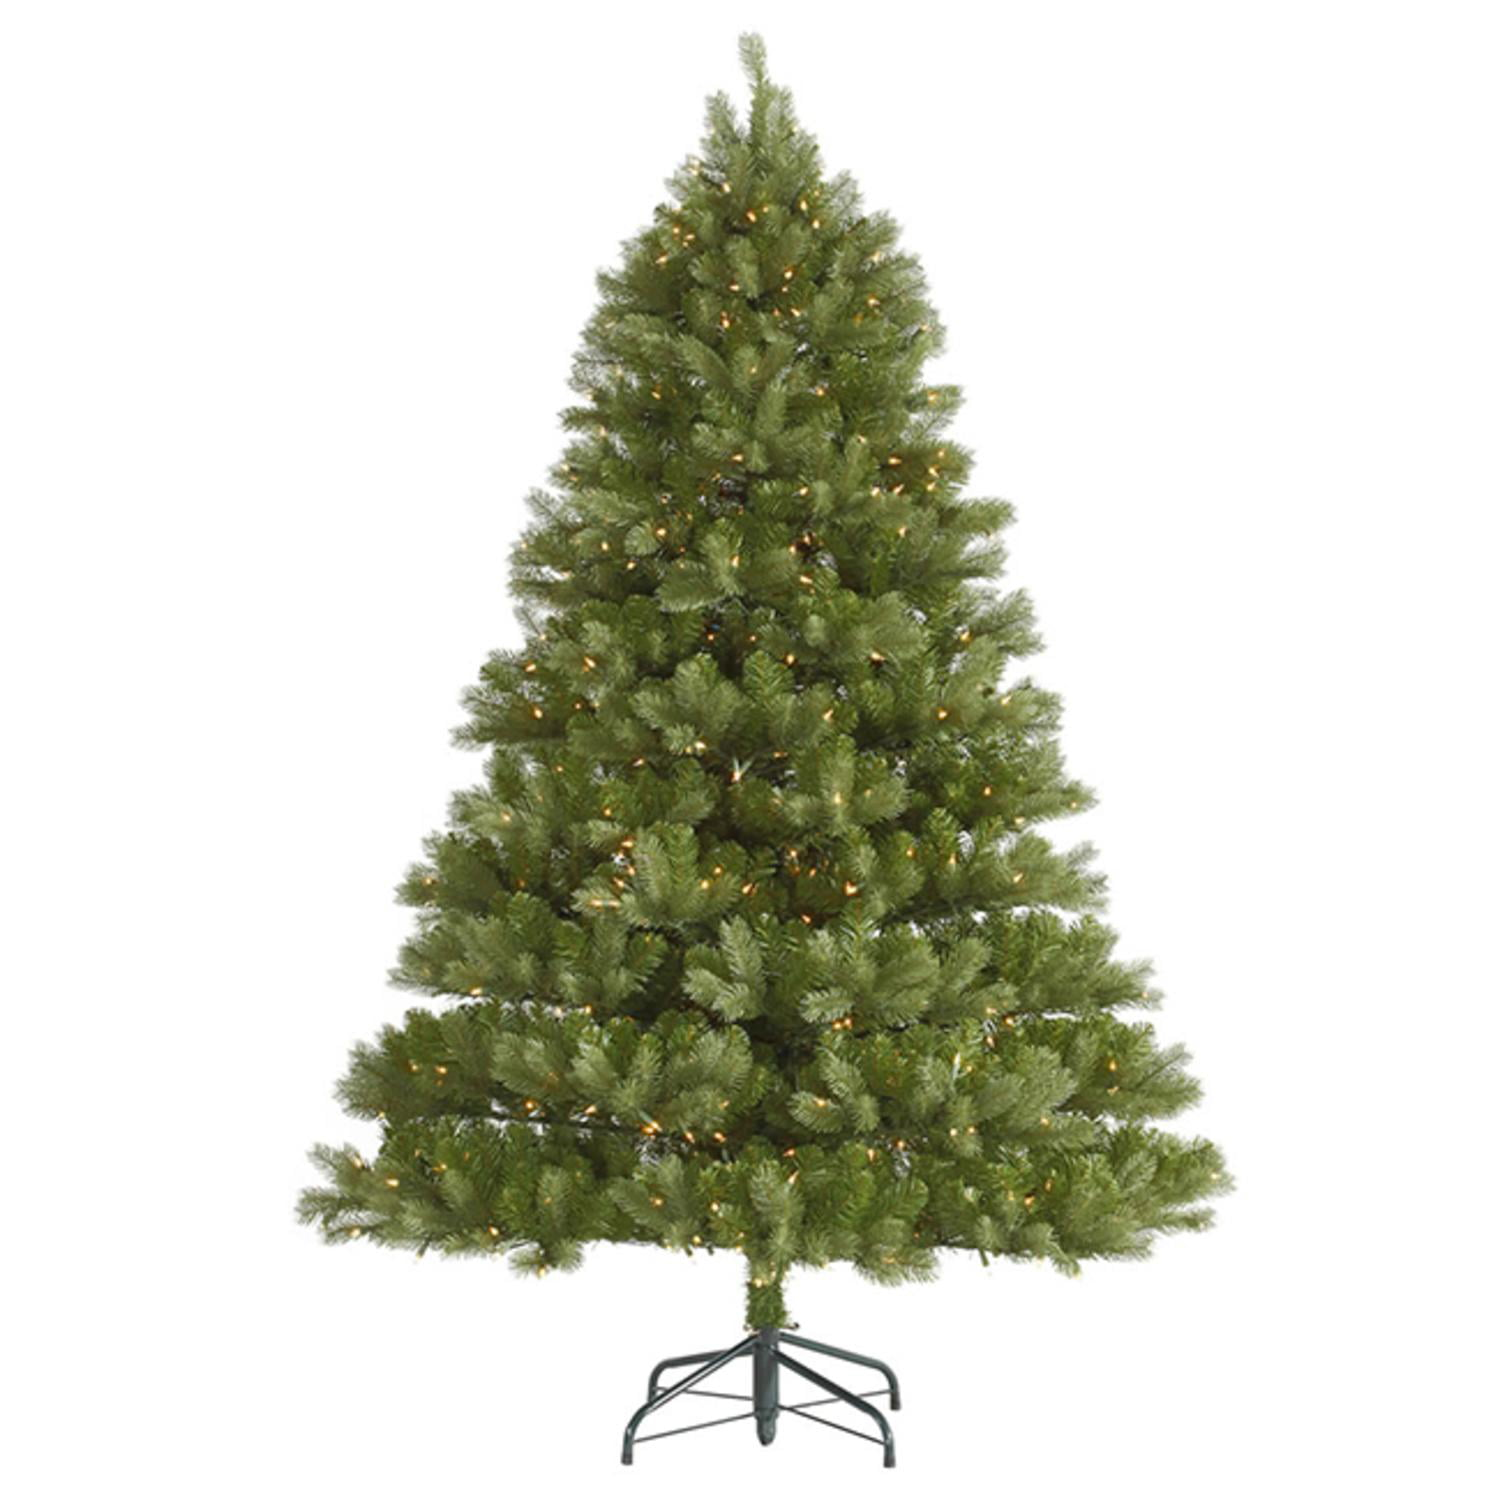 6.5' Pre-Lit Belvedere Spruce Artificial Christmas Tree Clear LED Lights by Vickerman